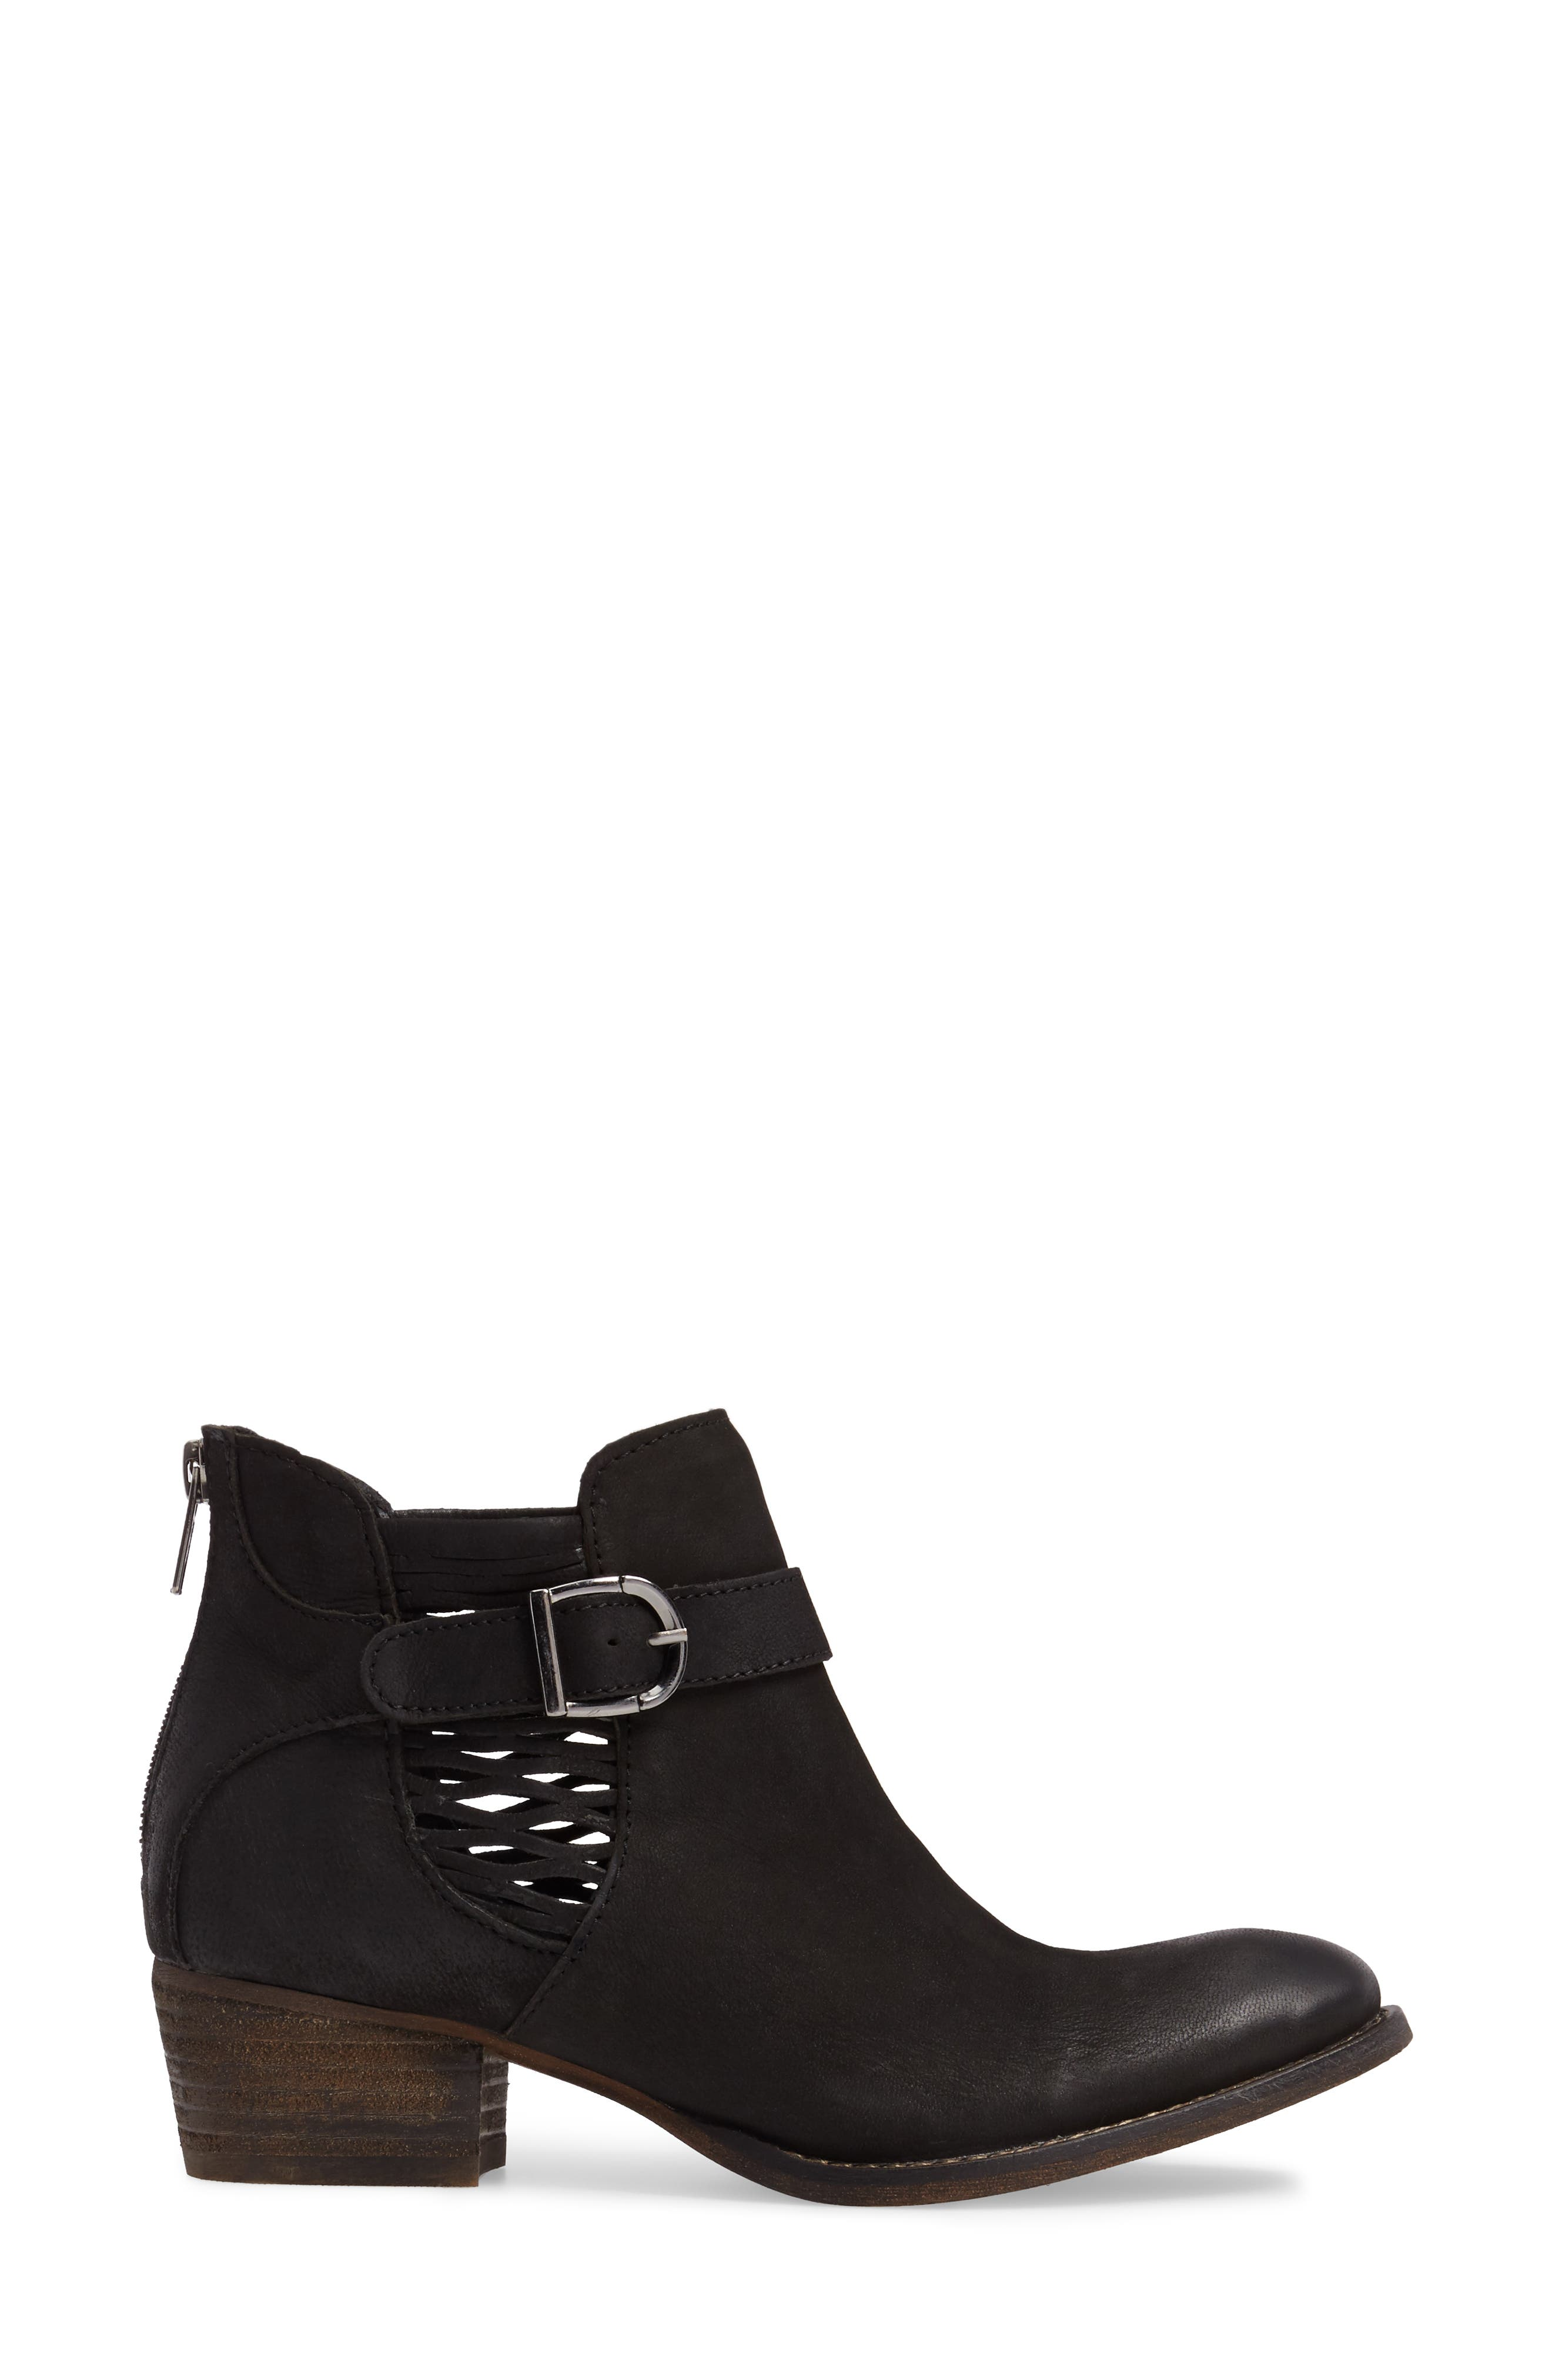 Yara Perforated Chelsea Bootie,                             Alternate thumbnail 3, color,                             001